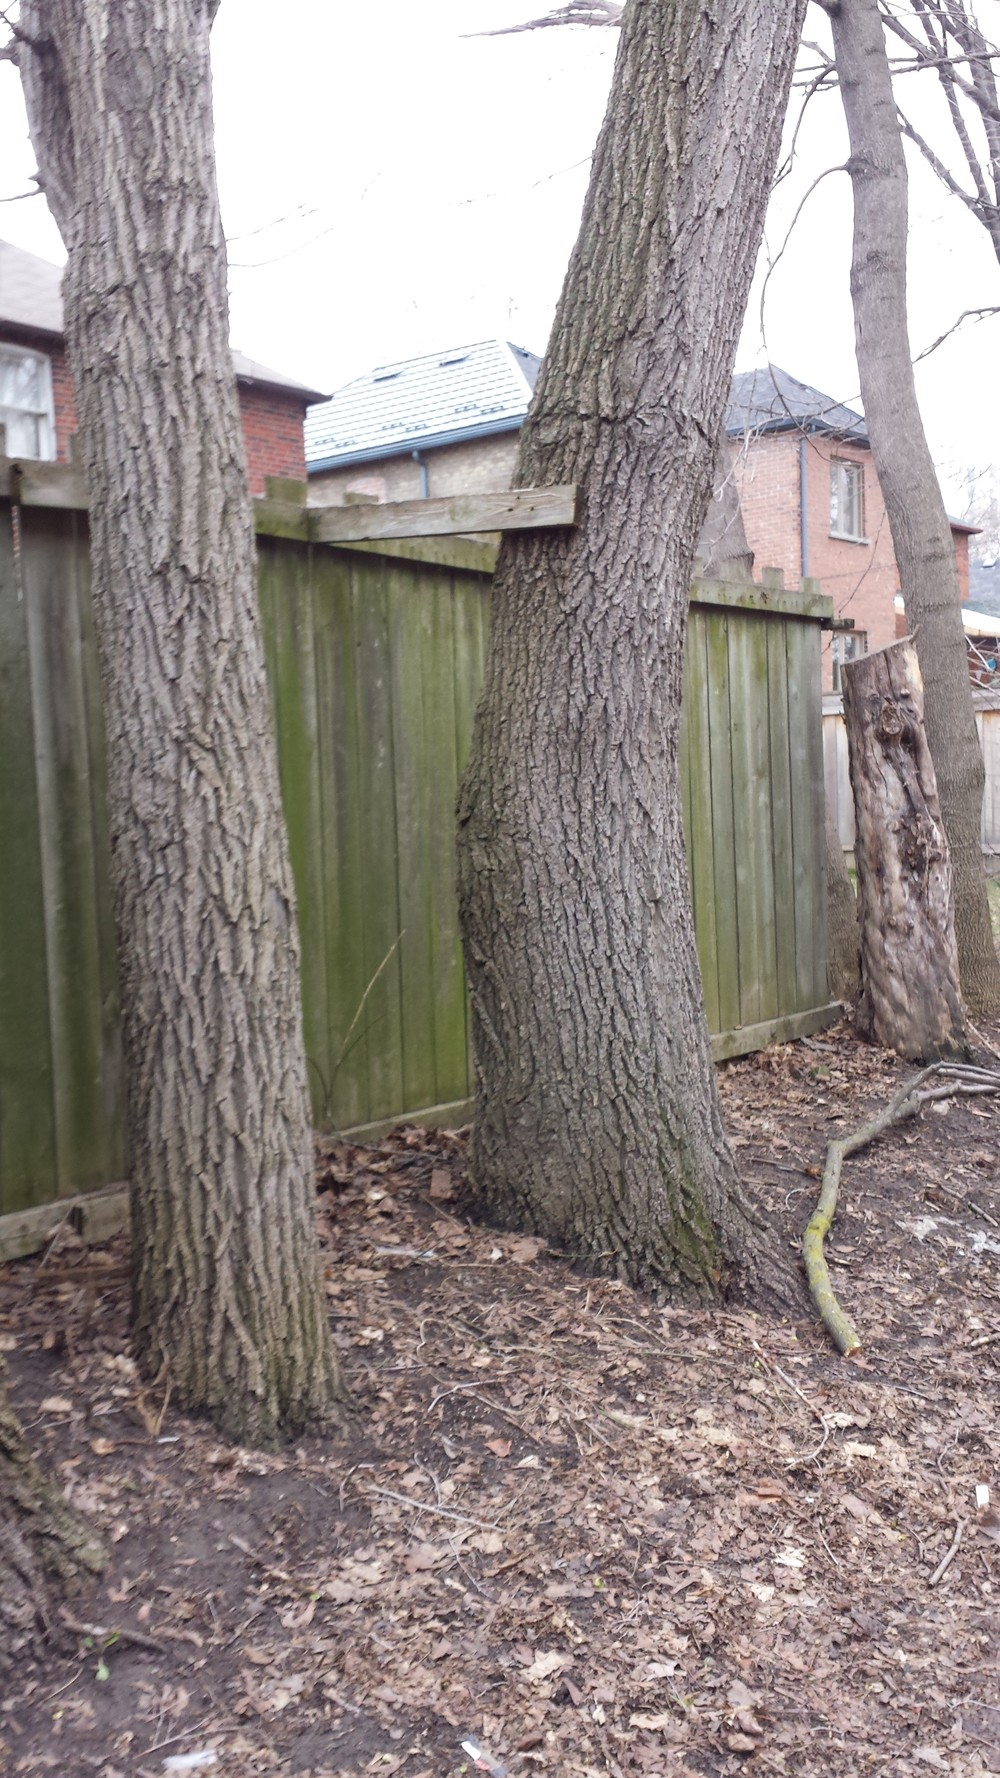 Shown above: A fence attacks a nearby tree. Possibly in retaliation.